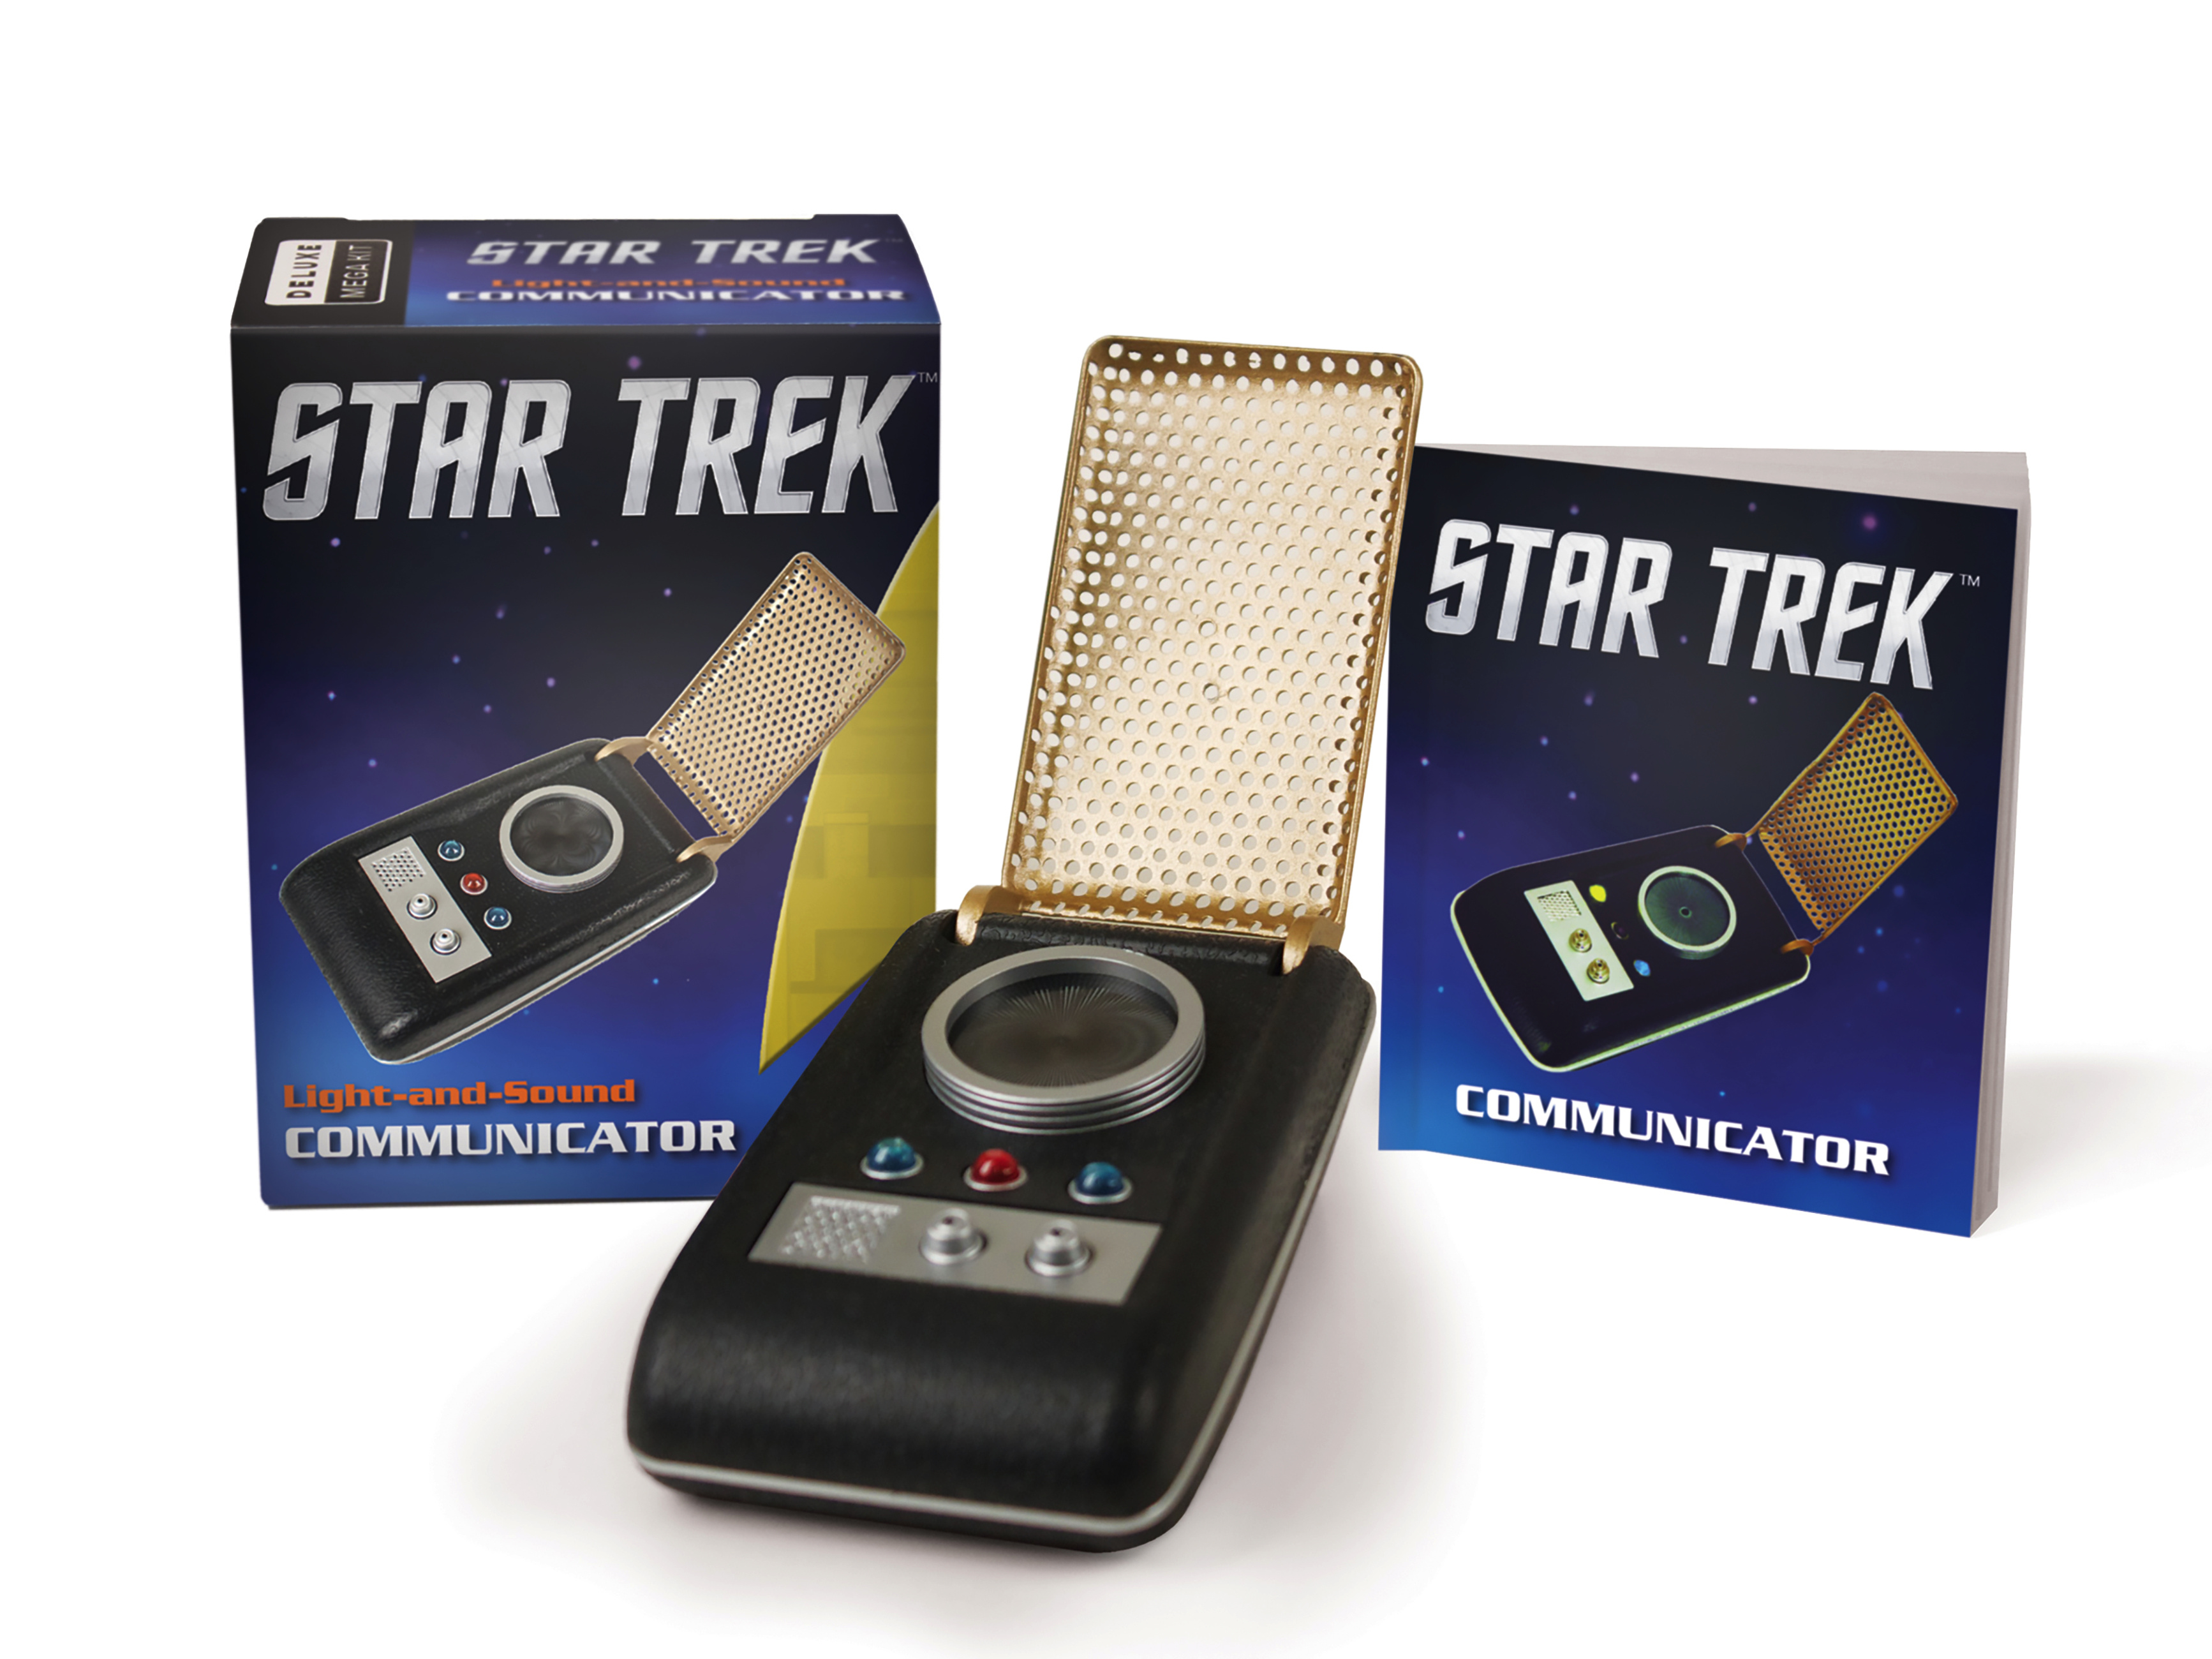 Star Trek: Light-and-Sound Communicator by Chip Carter | Hachette Book Group